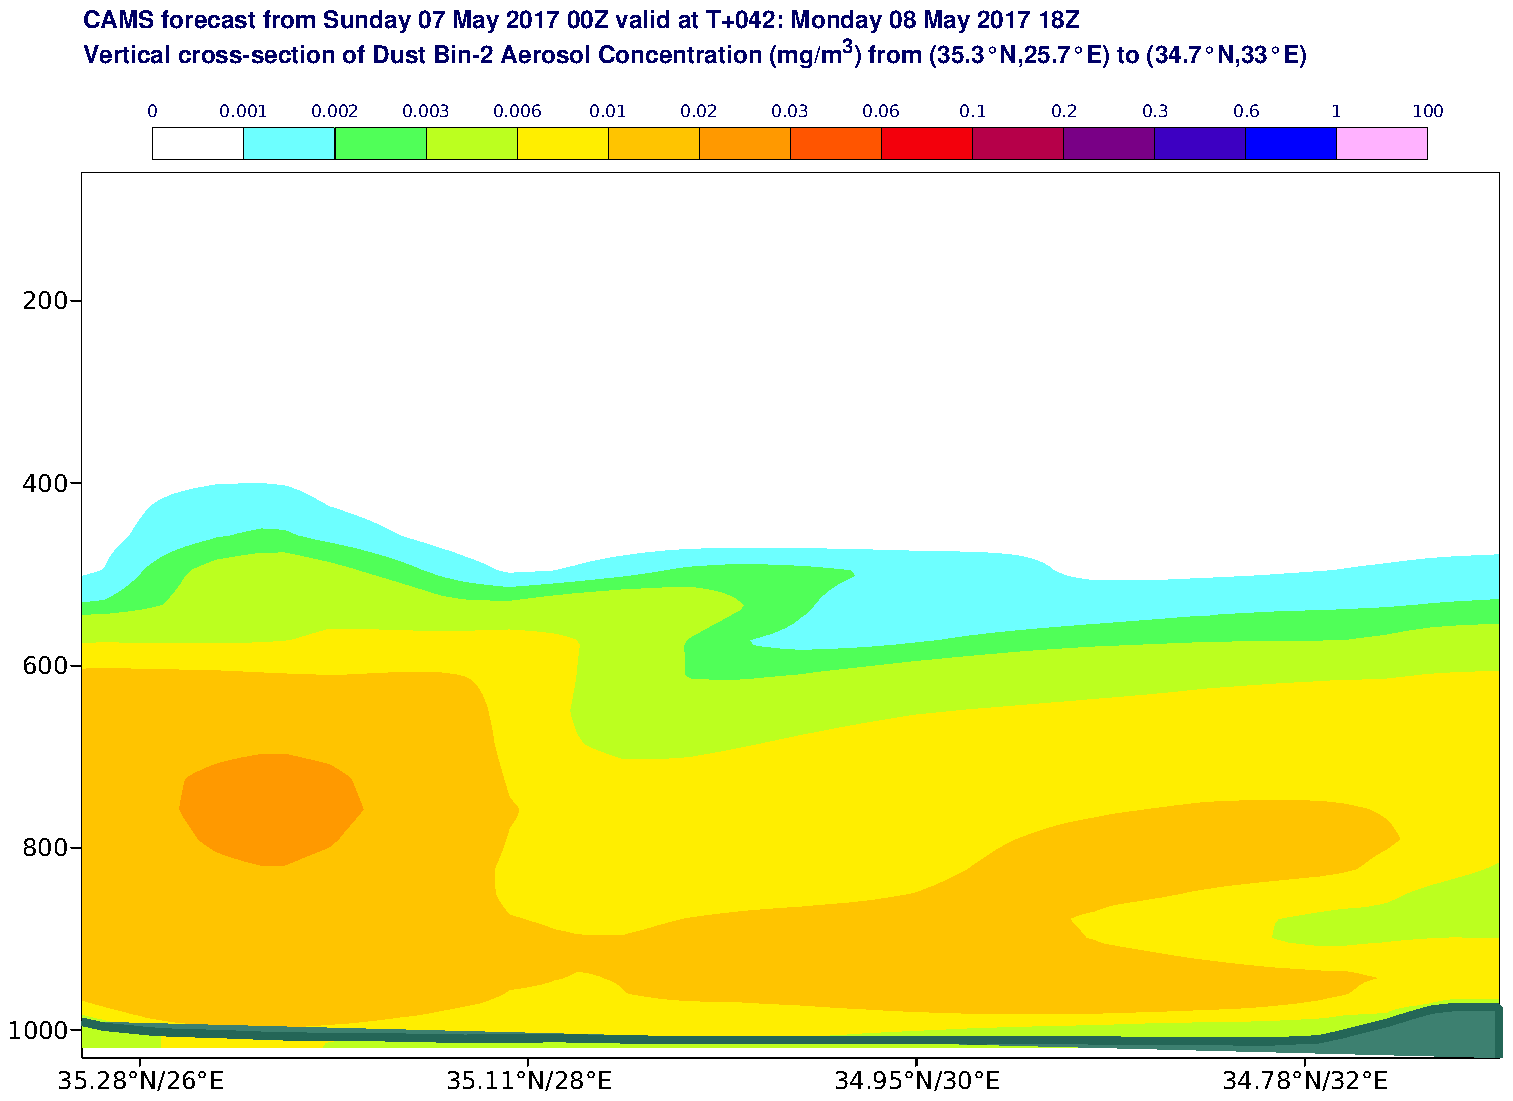 Vertical cross-section of Dust Bin-2 Aerosol Concentration (mg/m3) valid at T42 - 2017-05-08 18:00